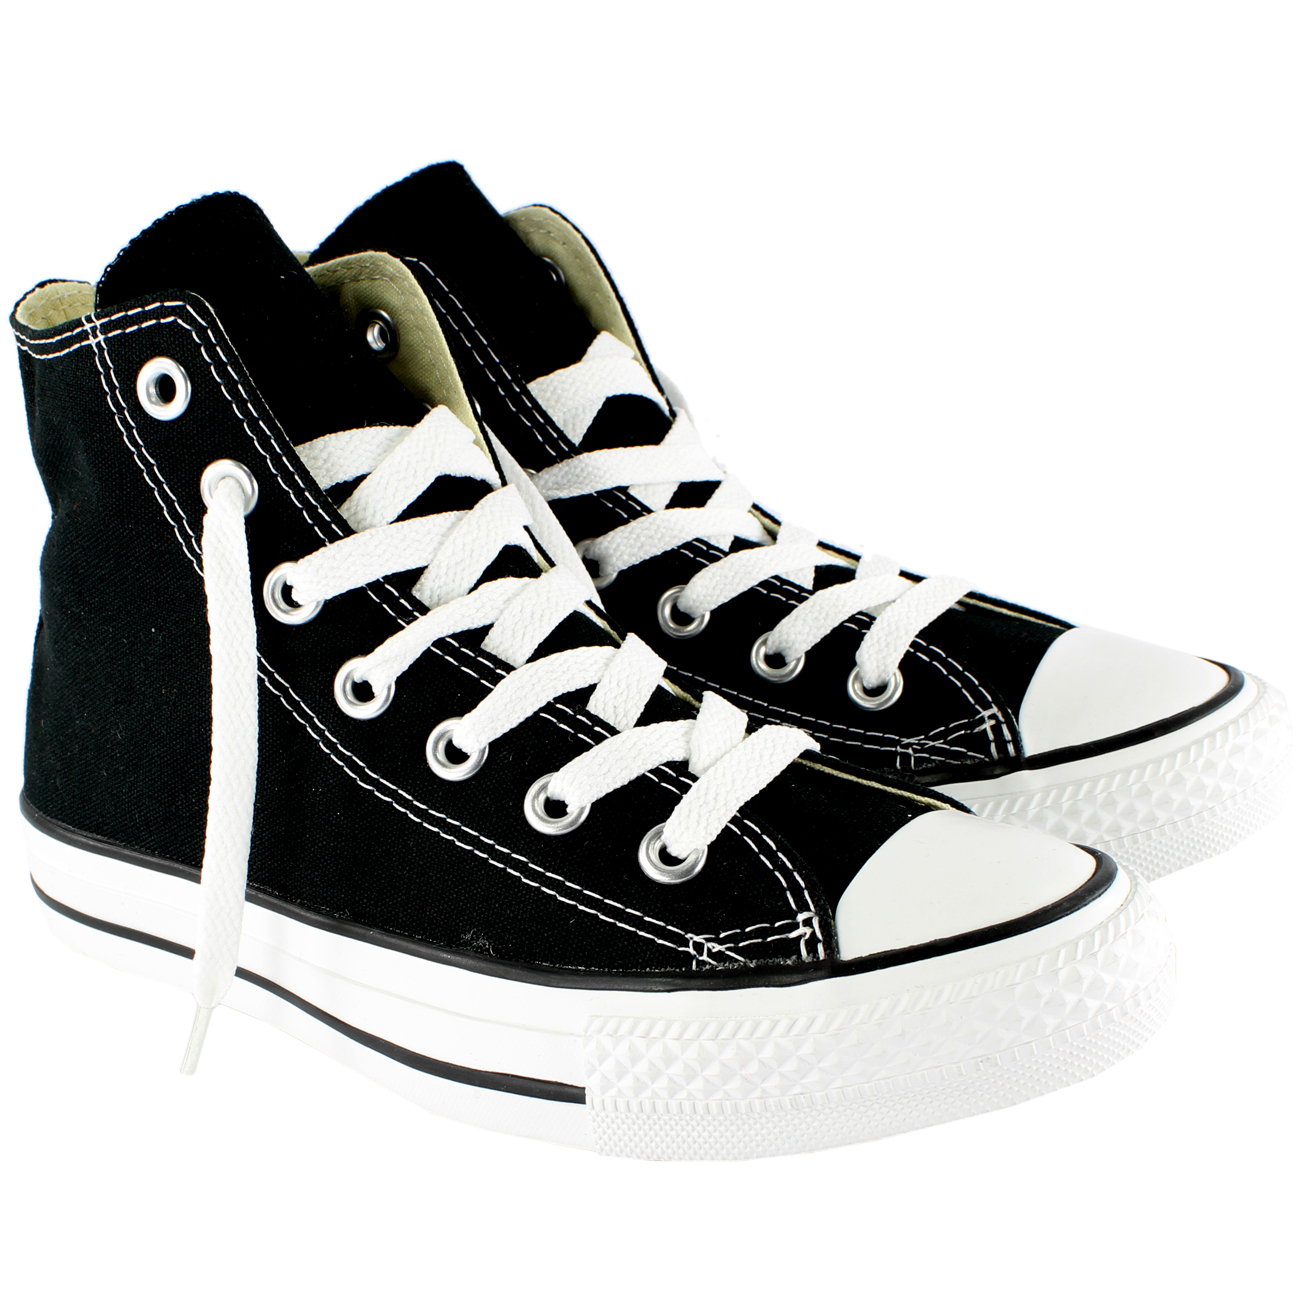 25e96f613c52a3 Womens Converse All Star Hi High Top Chuck Taylor Chucks Trainers UK ...